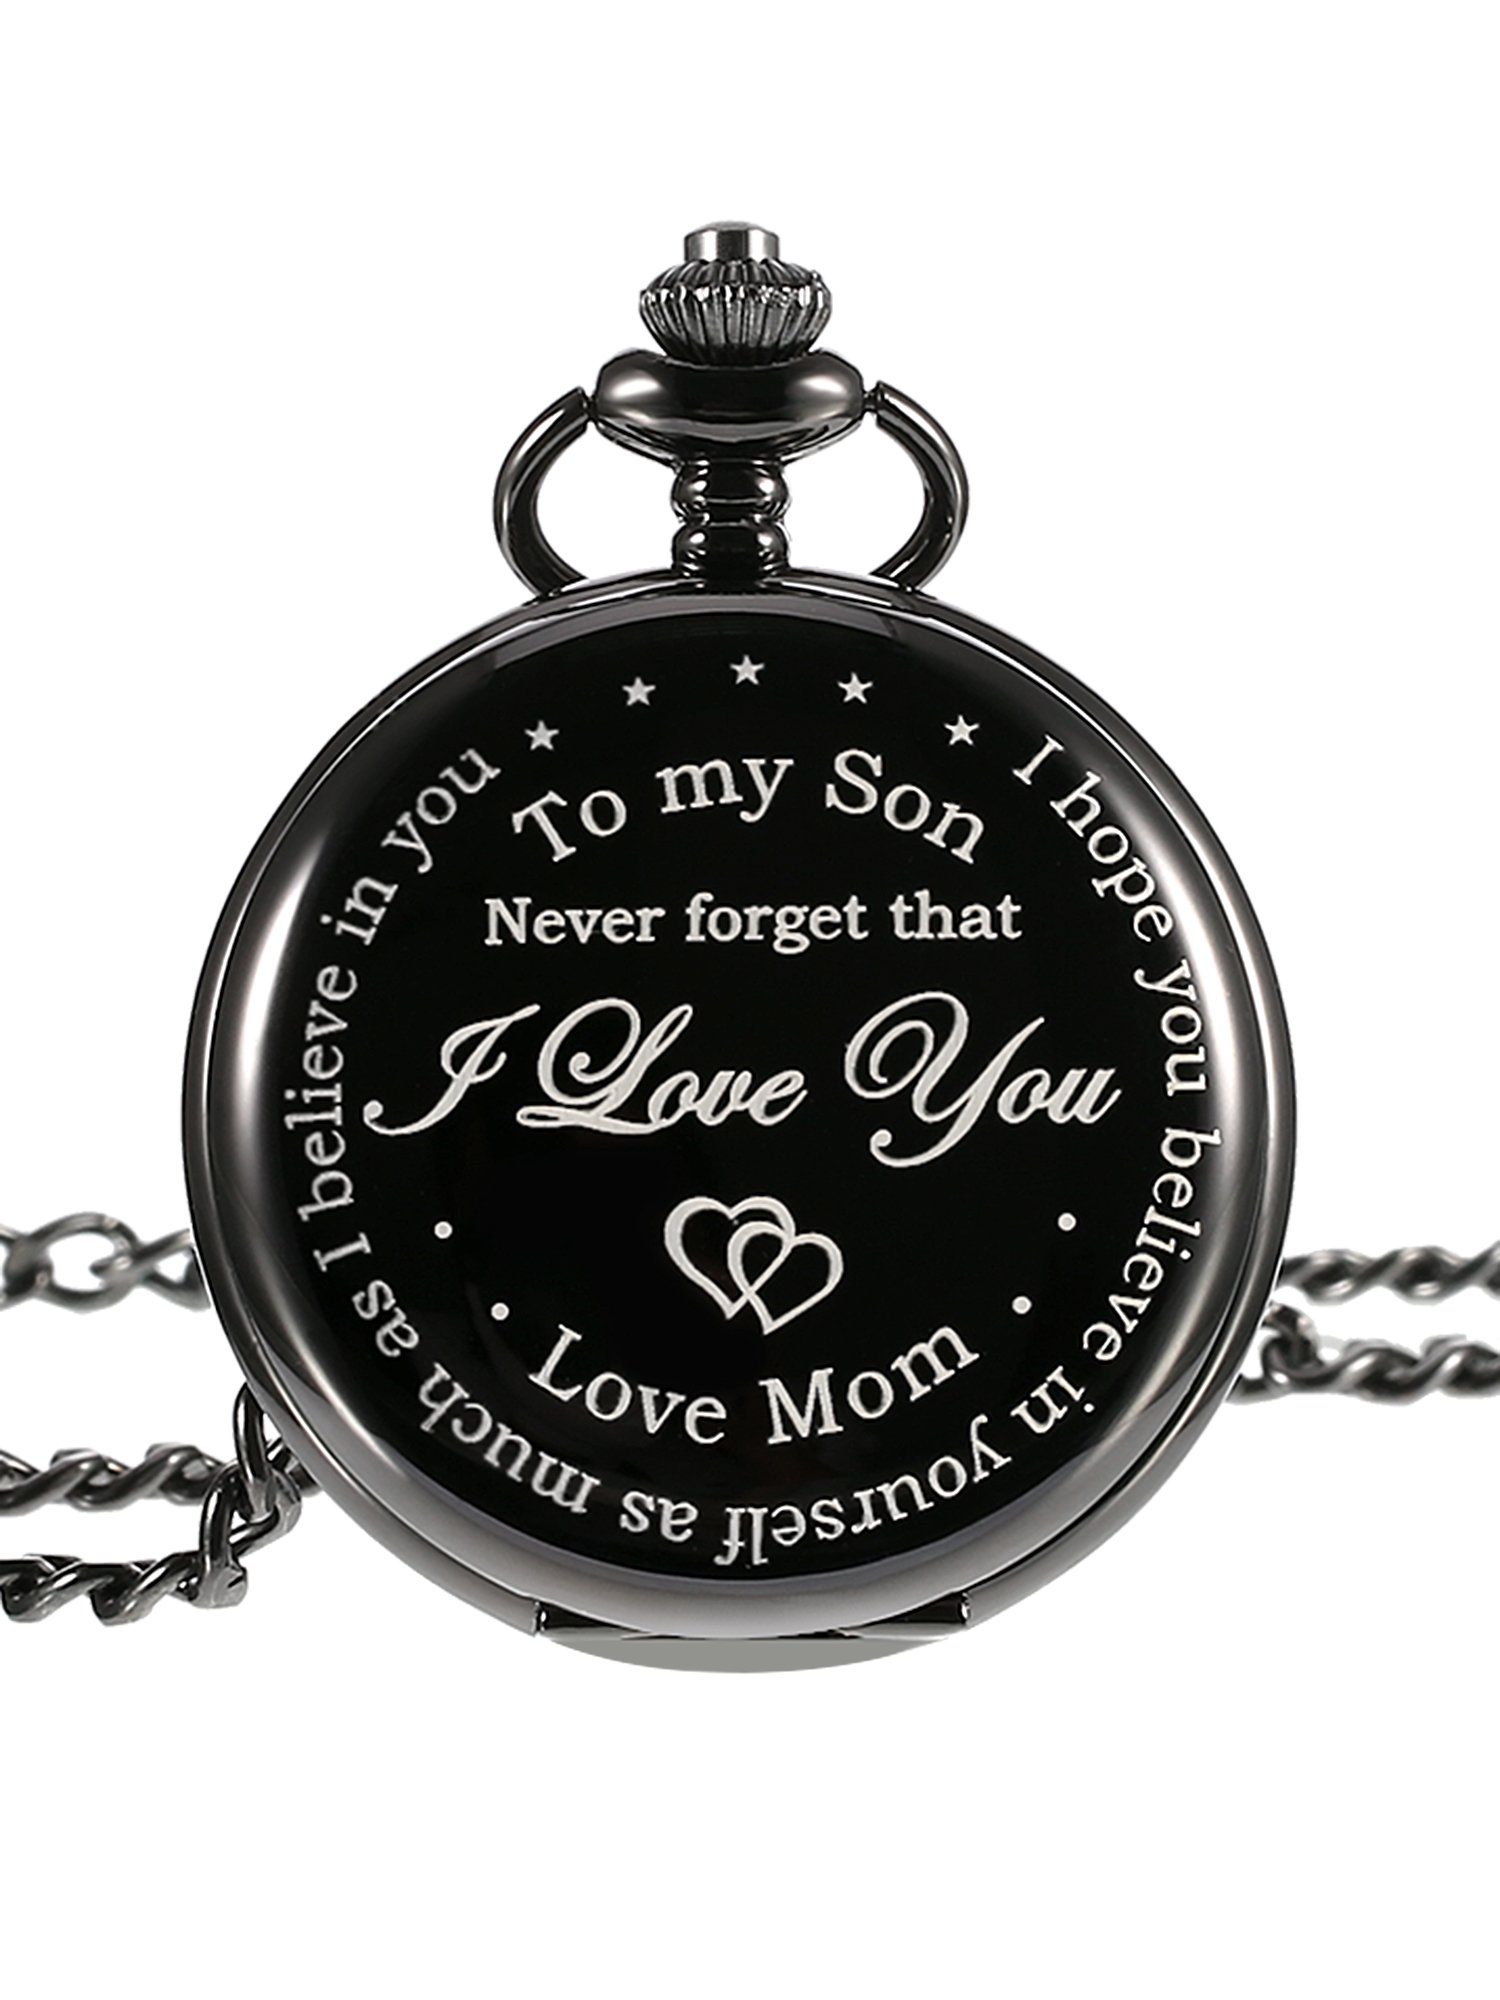 Hicarer Pocket Watch Gift for Son-Never Forget That, I Love you, Love Mom-from Mother to Son Pocket Watch with Chain, Black Dial